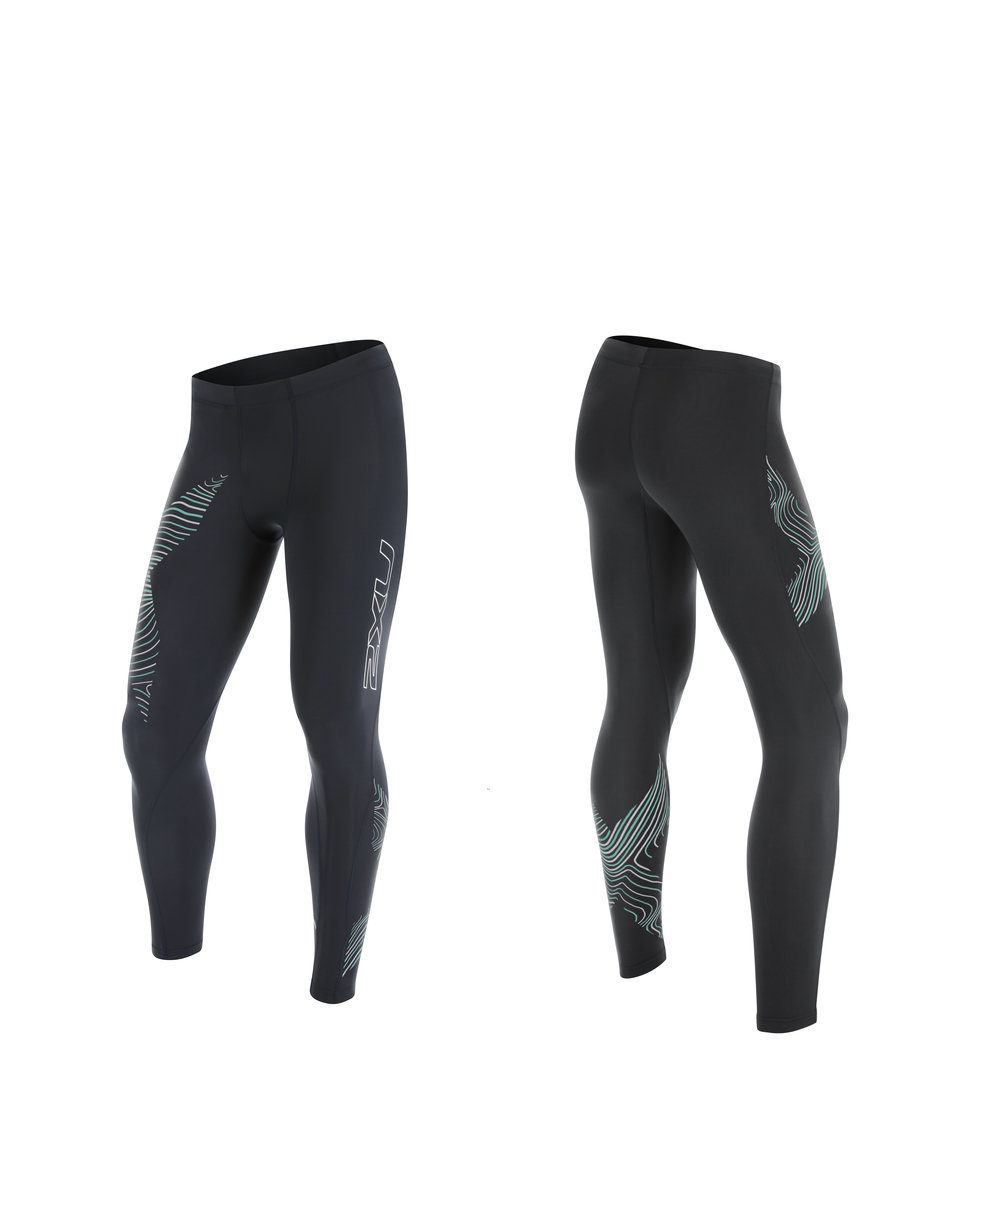 Hyoptik Compression Tights_Steel Luminsescent_HKD998.jpg